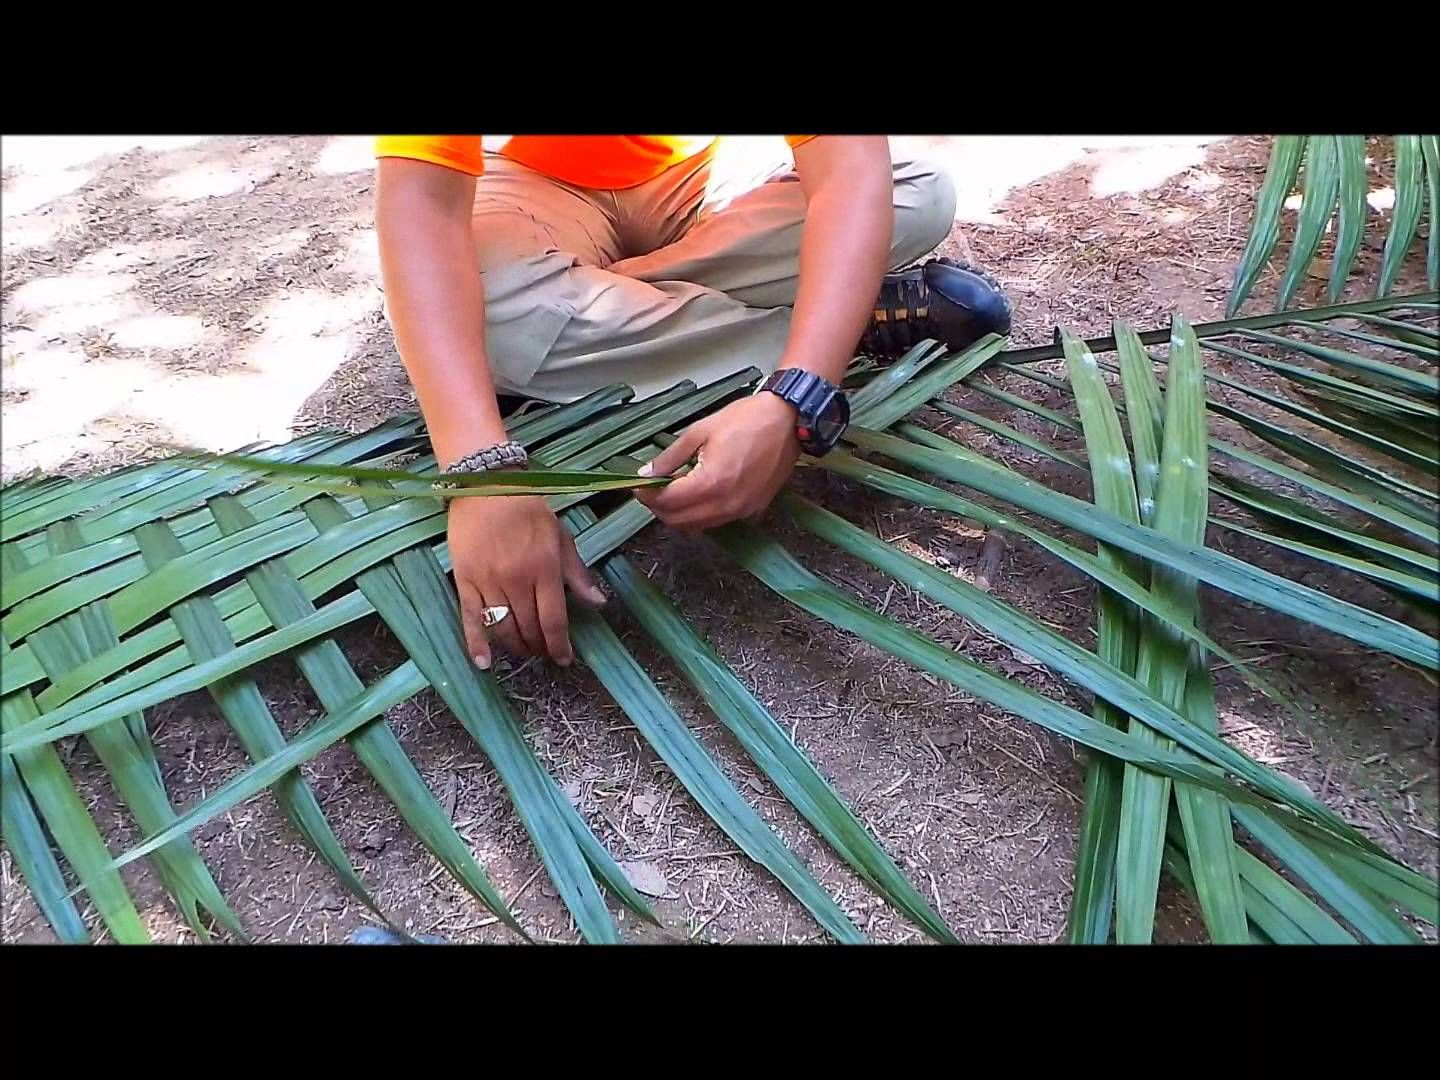 Survival Shelter: Using palm and bamboo